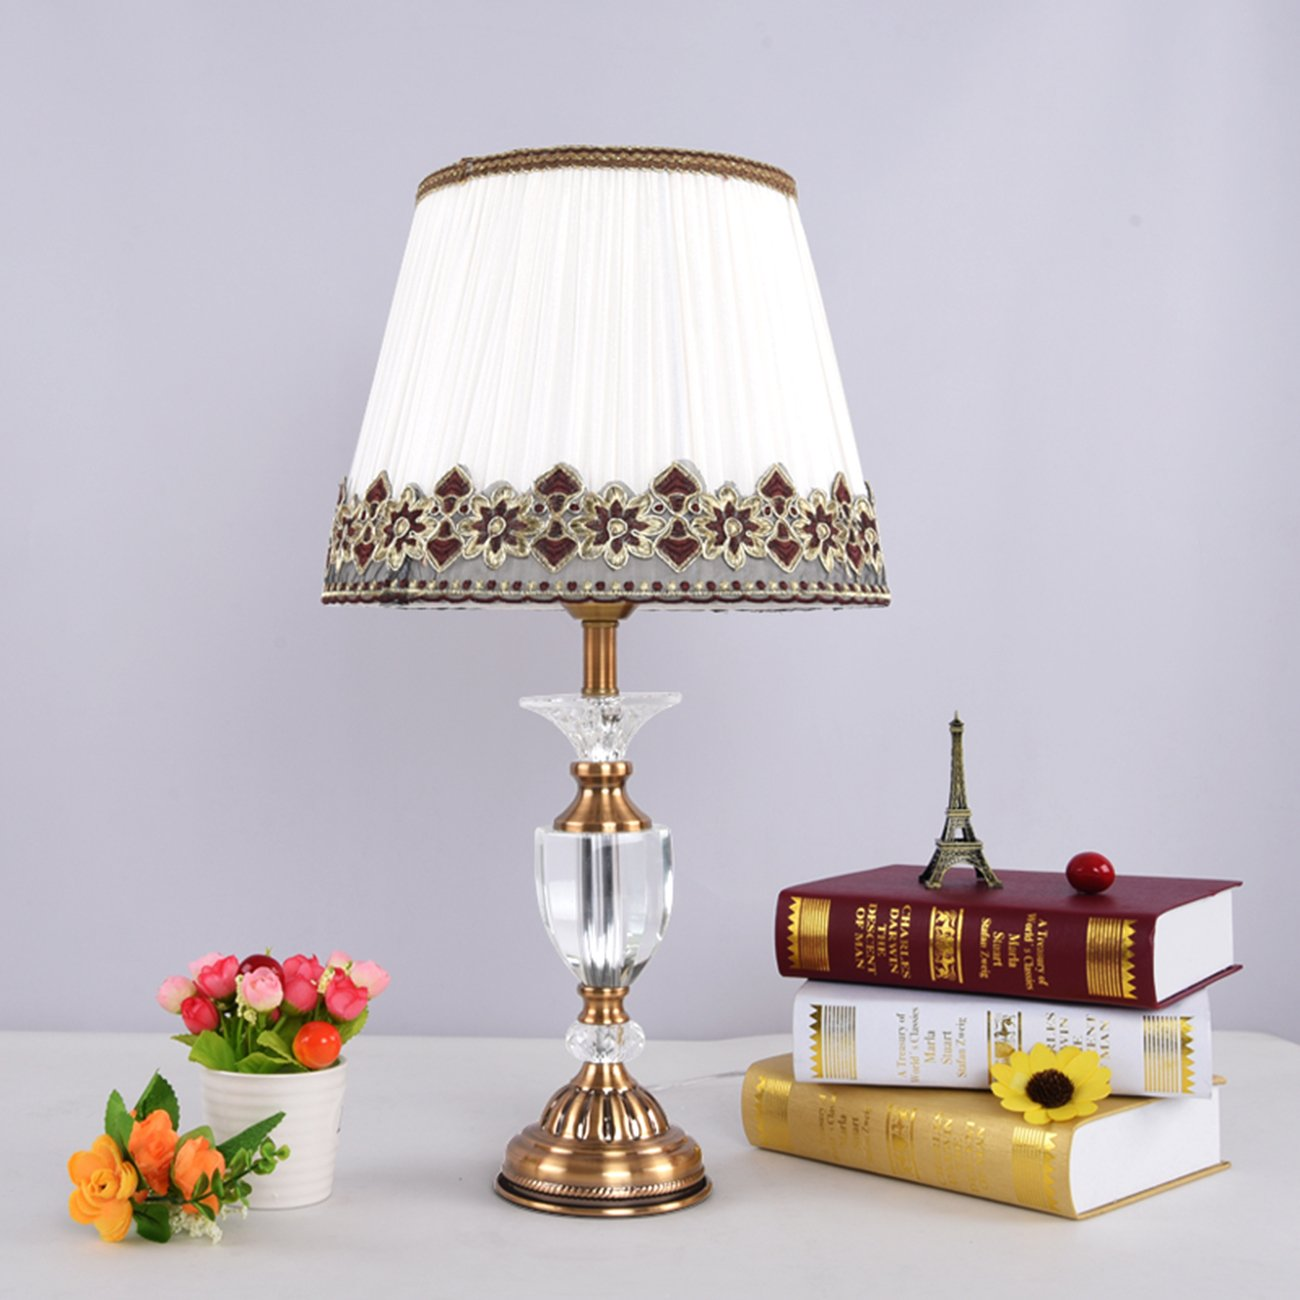 Garwarm Crystal Flower Table Lamps For Living Room Bedroom,3055CM/11.821.6 Inch WH